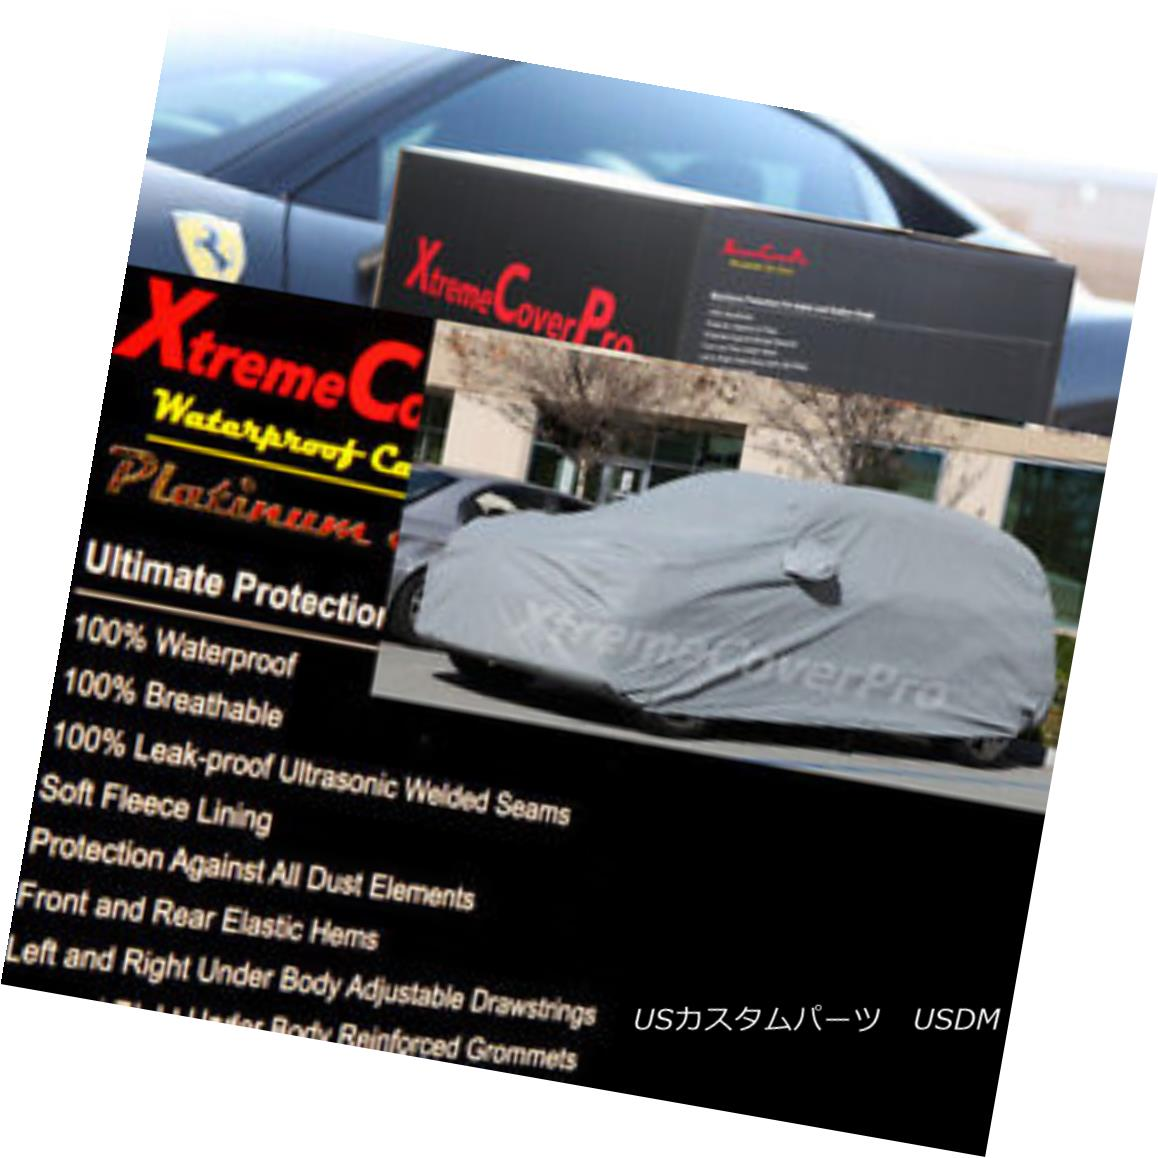 カーカバー 1999 2000 Chrysler Town & Country Waterproof Car Cover w/MirrorPocket 1999 2000 Chrysler Town& MirrorPocket付きカントリー防水カーカバー